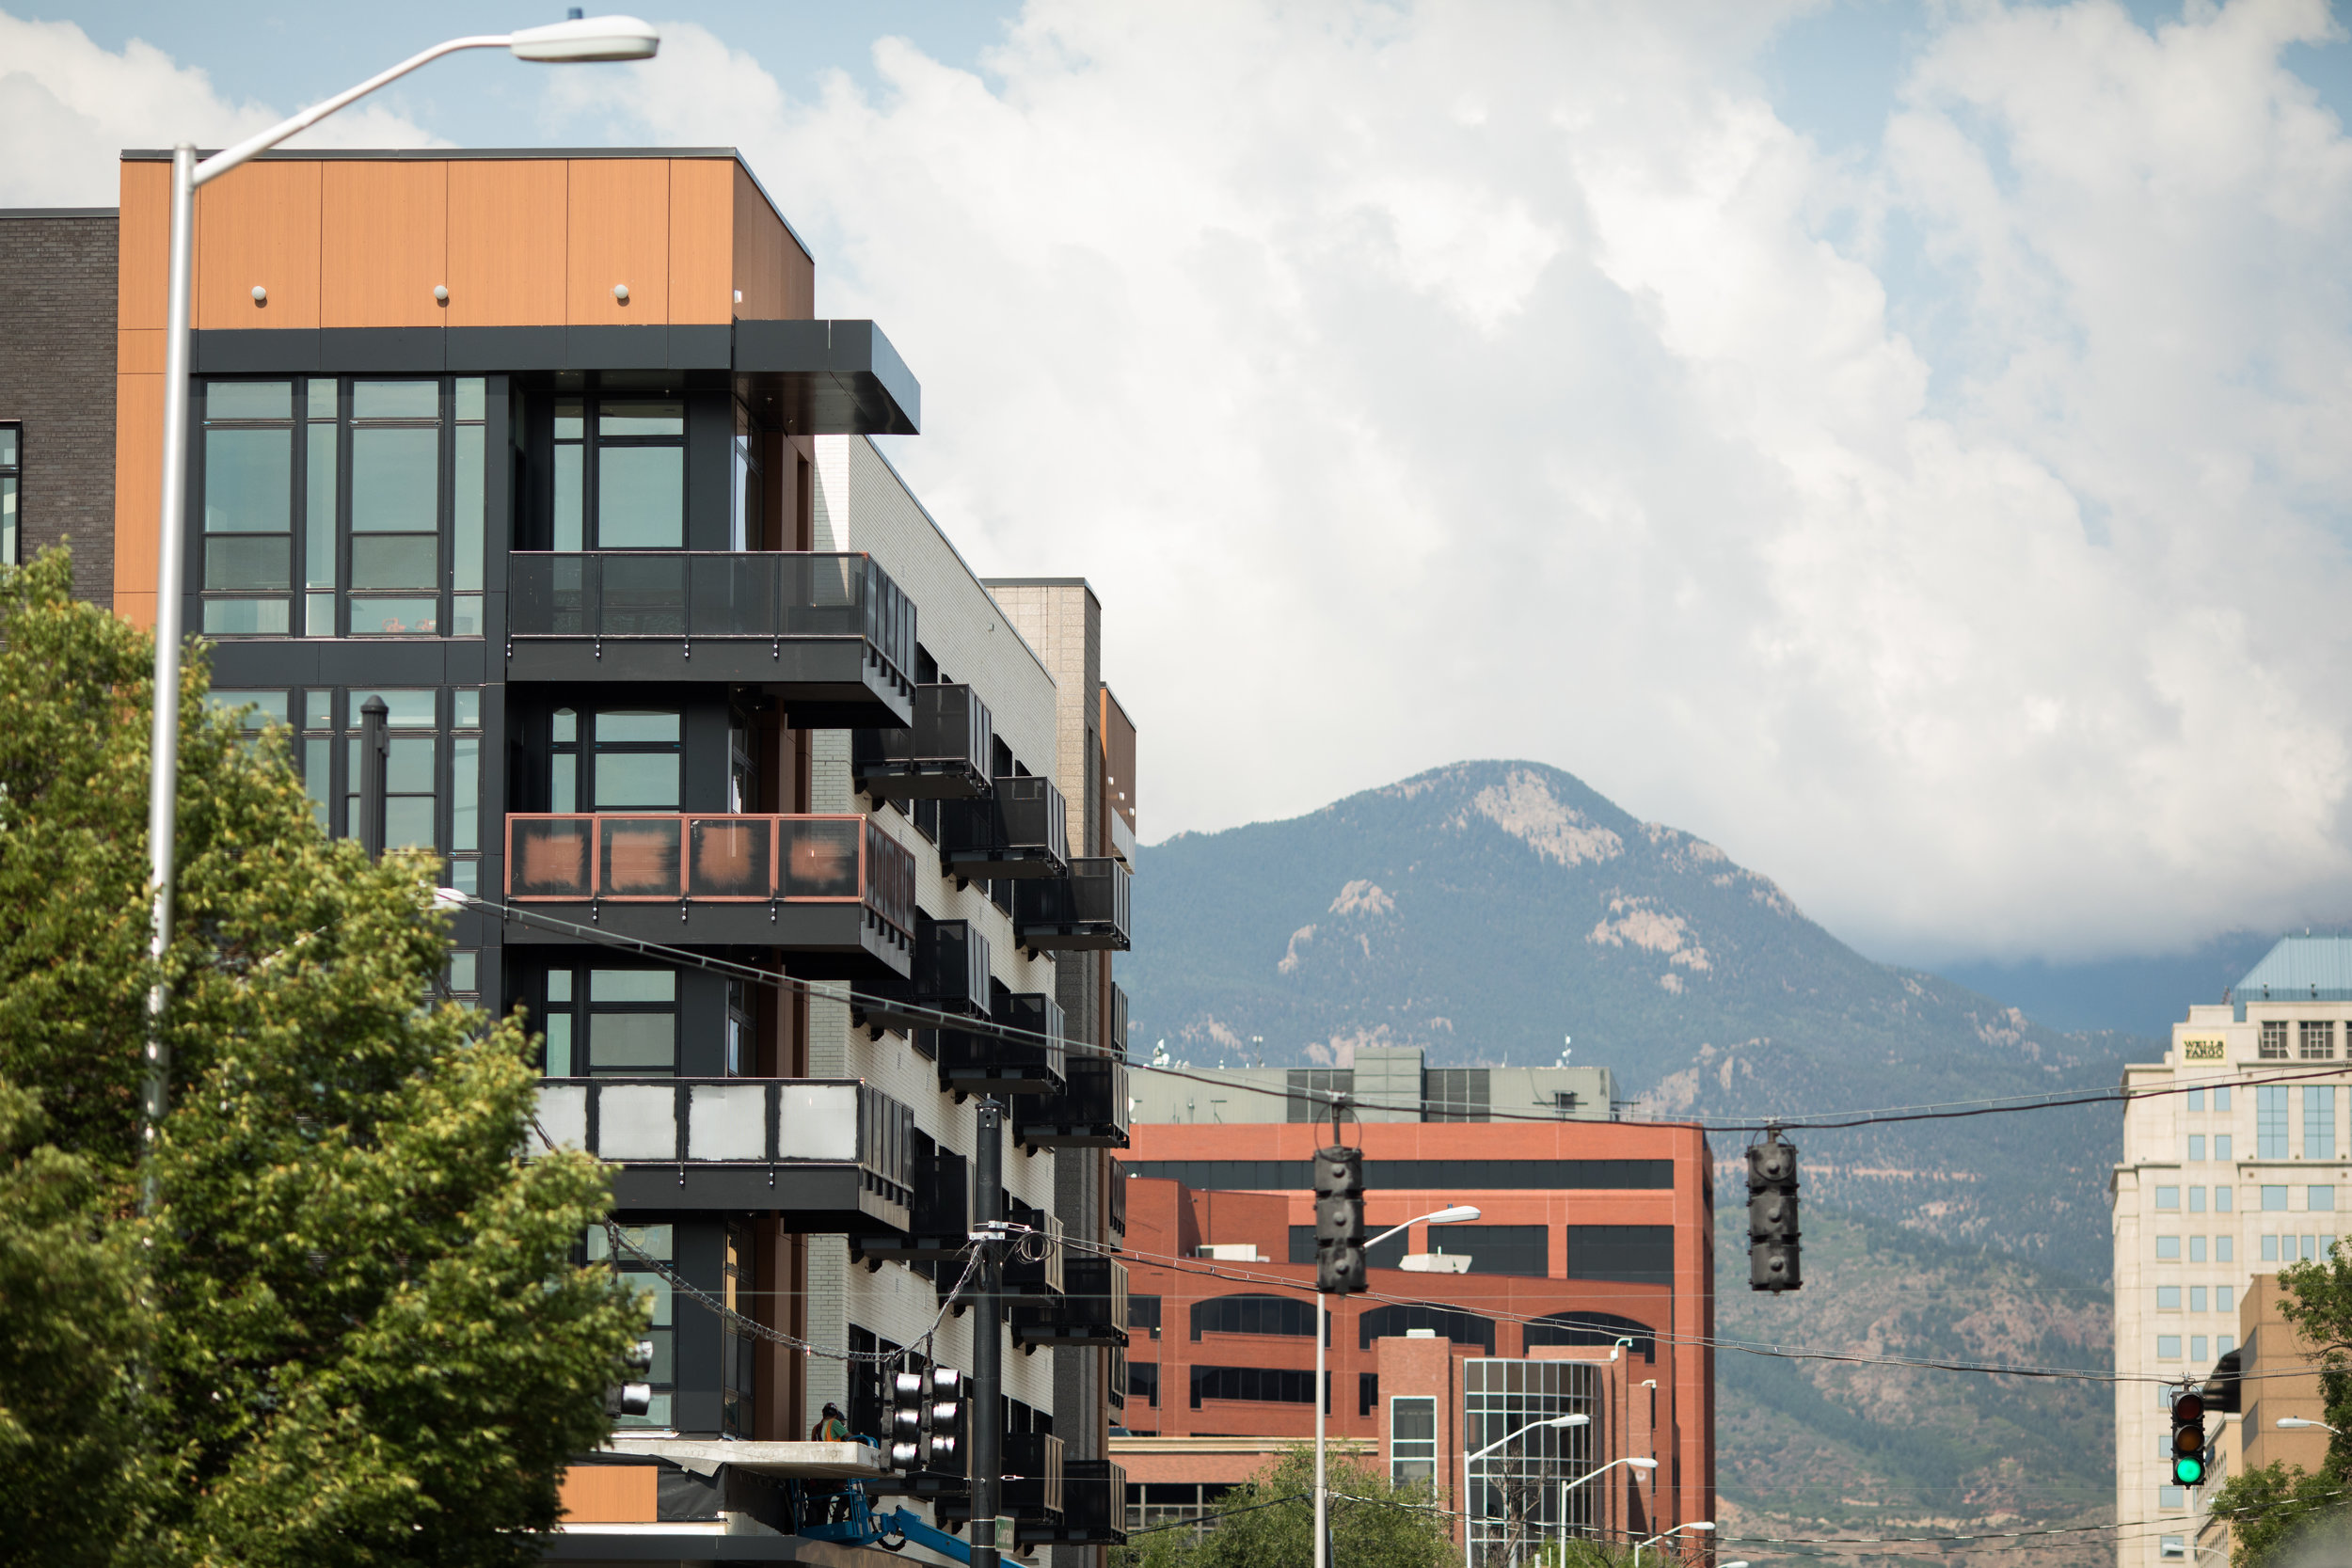 333 Eco Apartments  -Colorado Springs, CO (on behalf of The Worley Co)